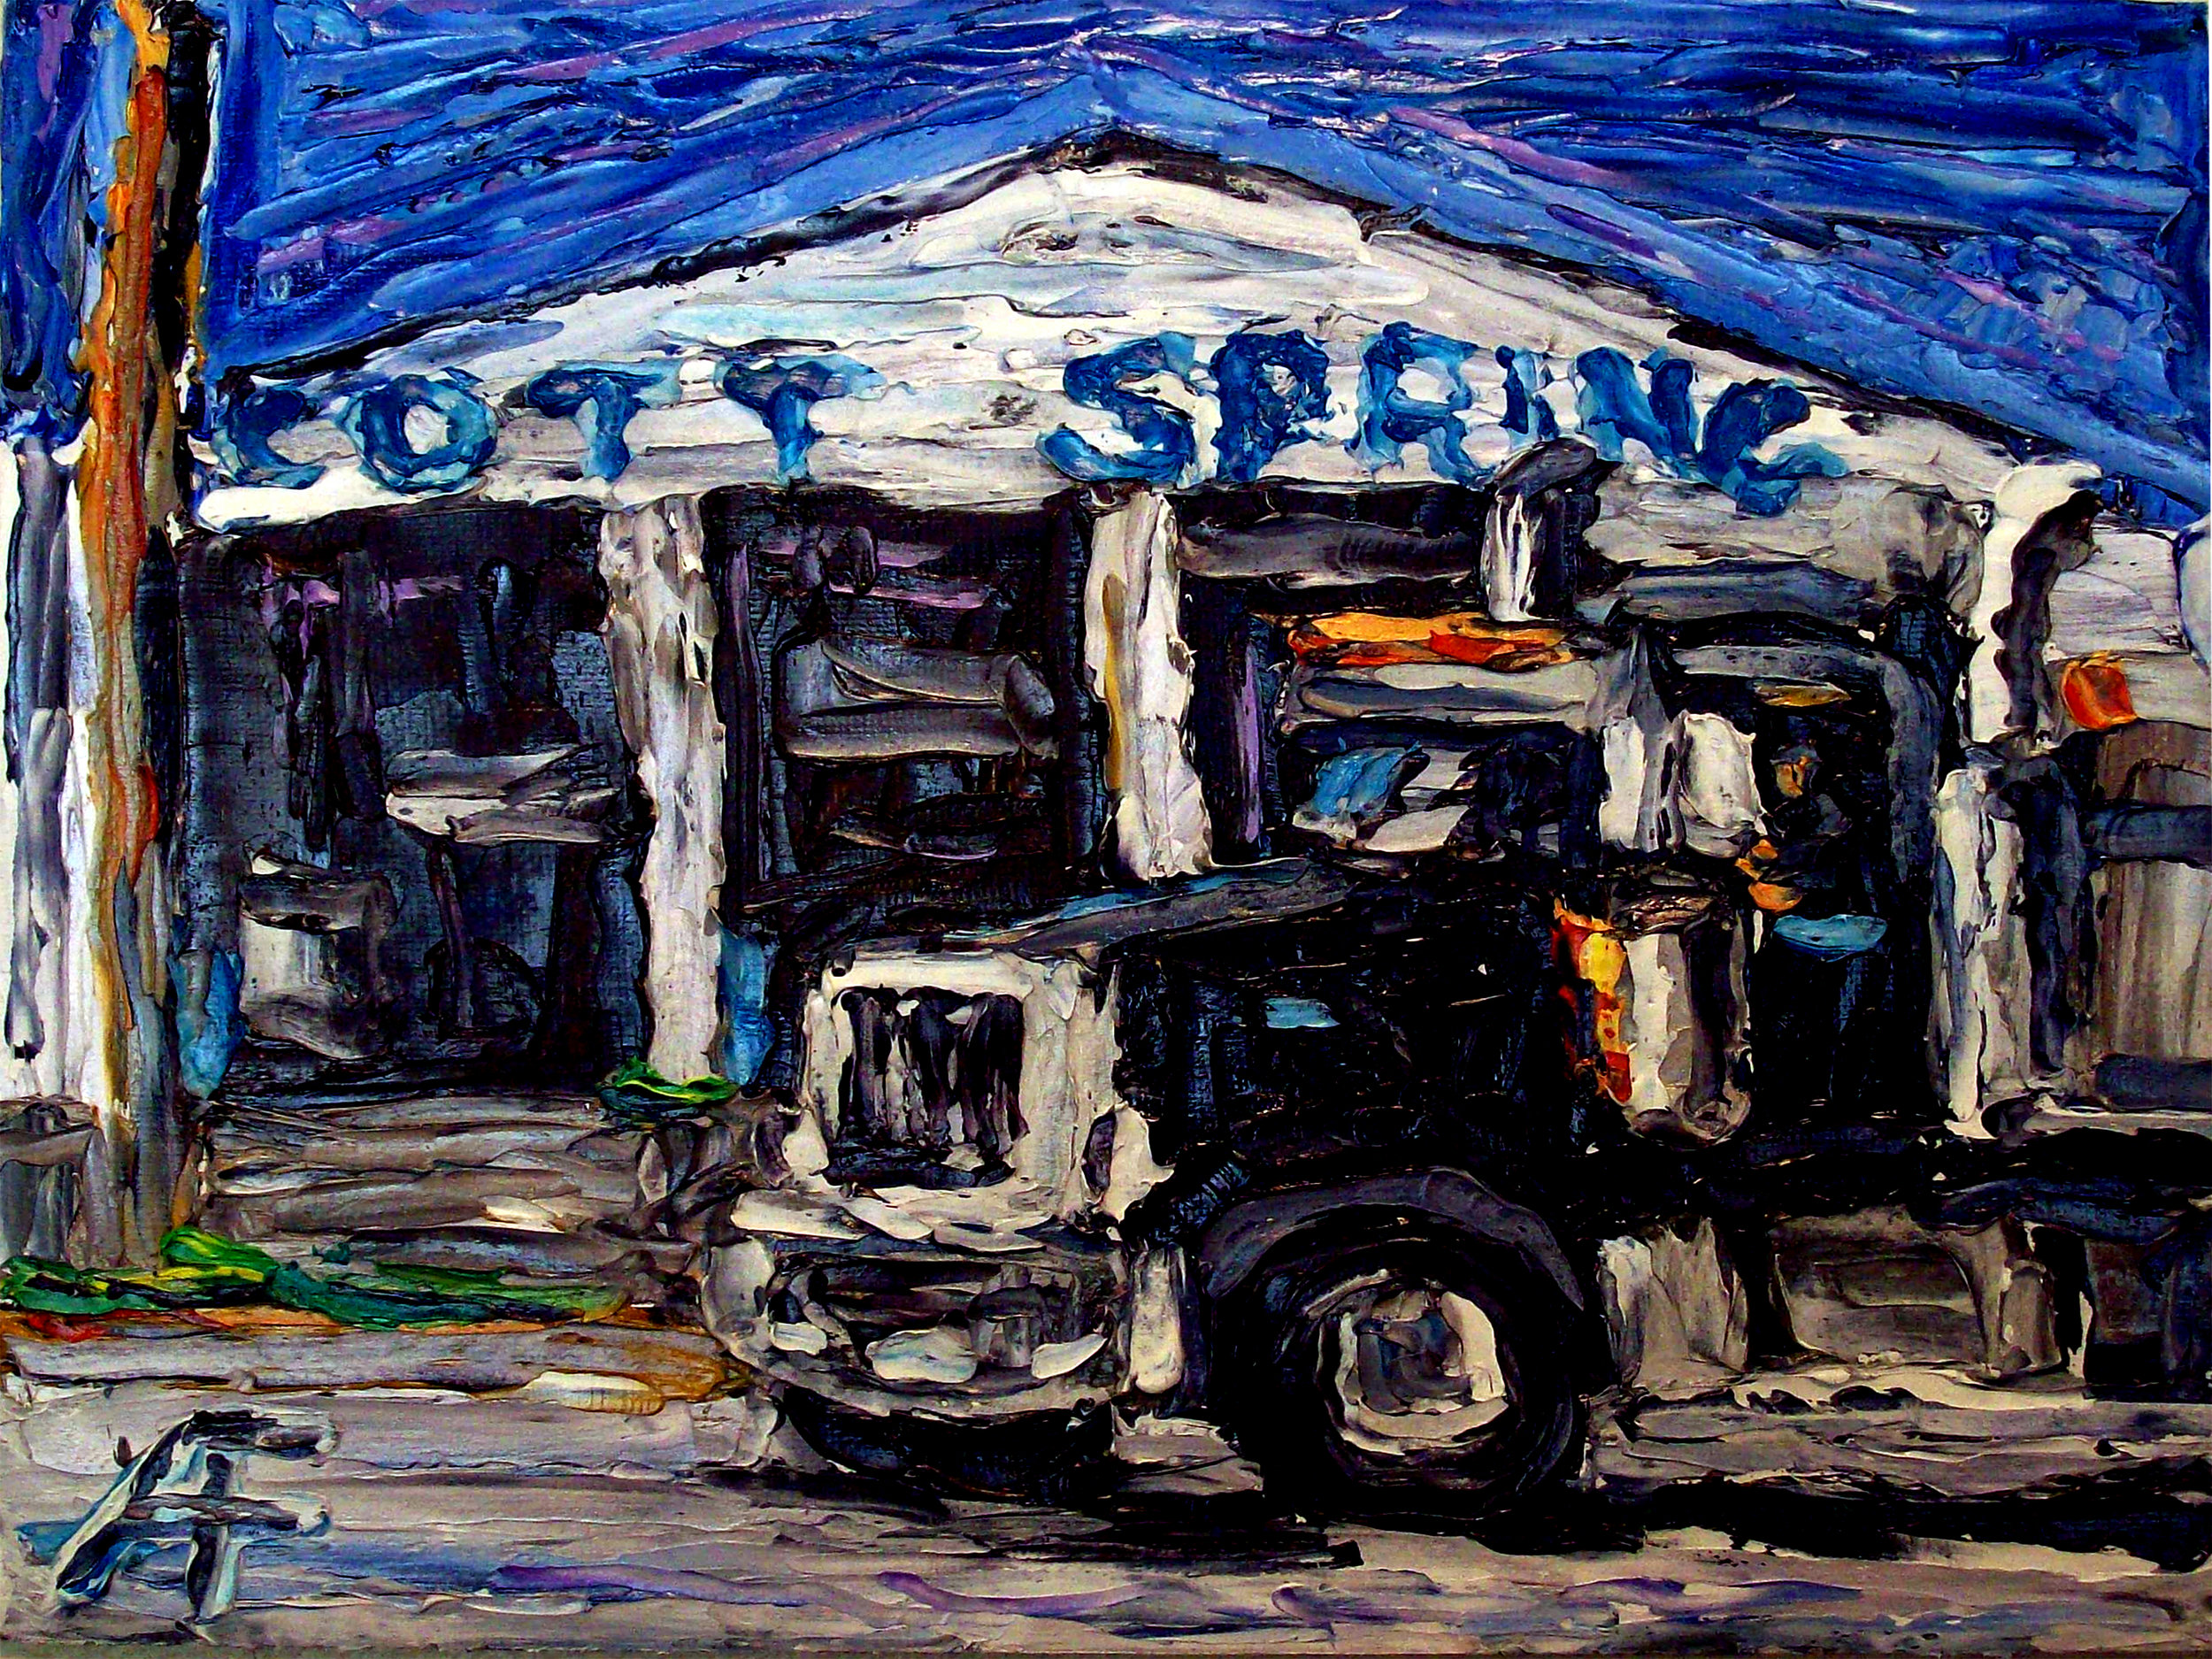 forrest_surrey_bc_industry_truck_oil_on_canvas_panel_8x10_2014.jpg